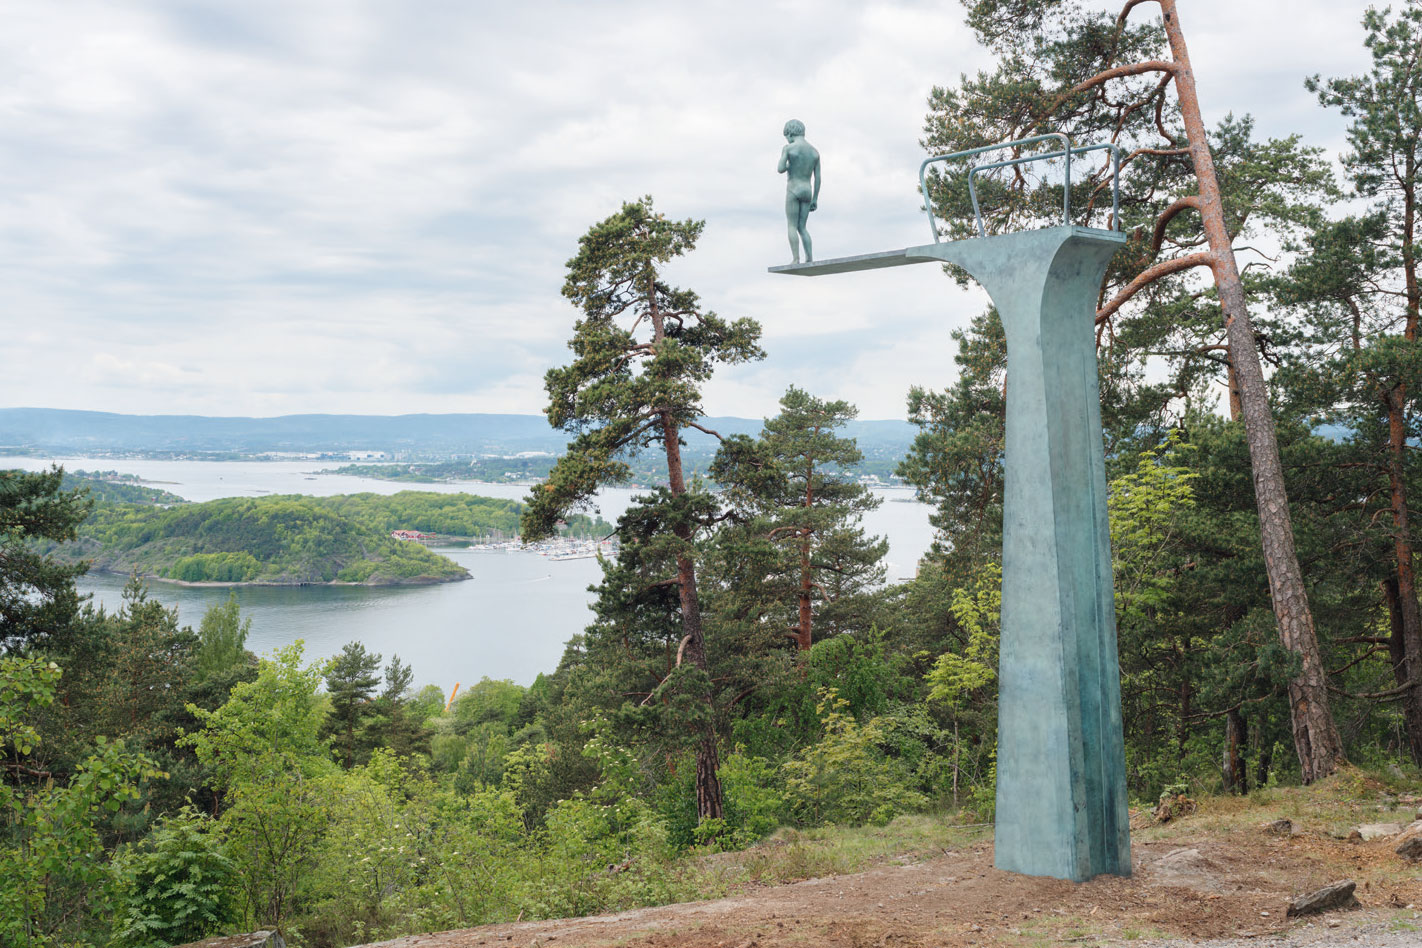 Dilemma, 2017, by Elmgreen & Dragset, Ekebergparken, Oslo, Norway